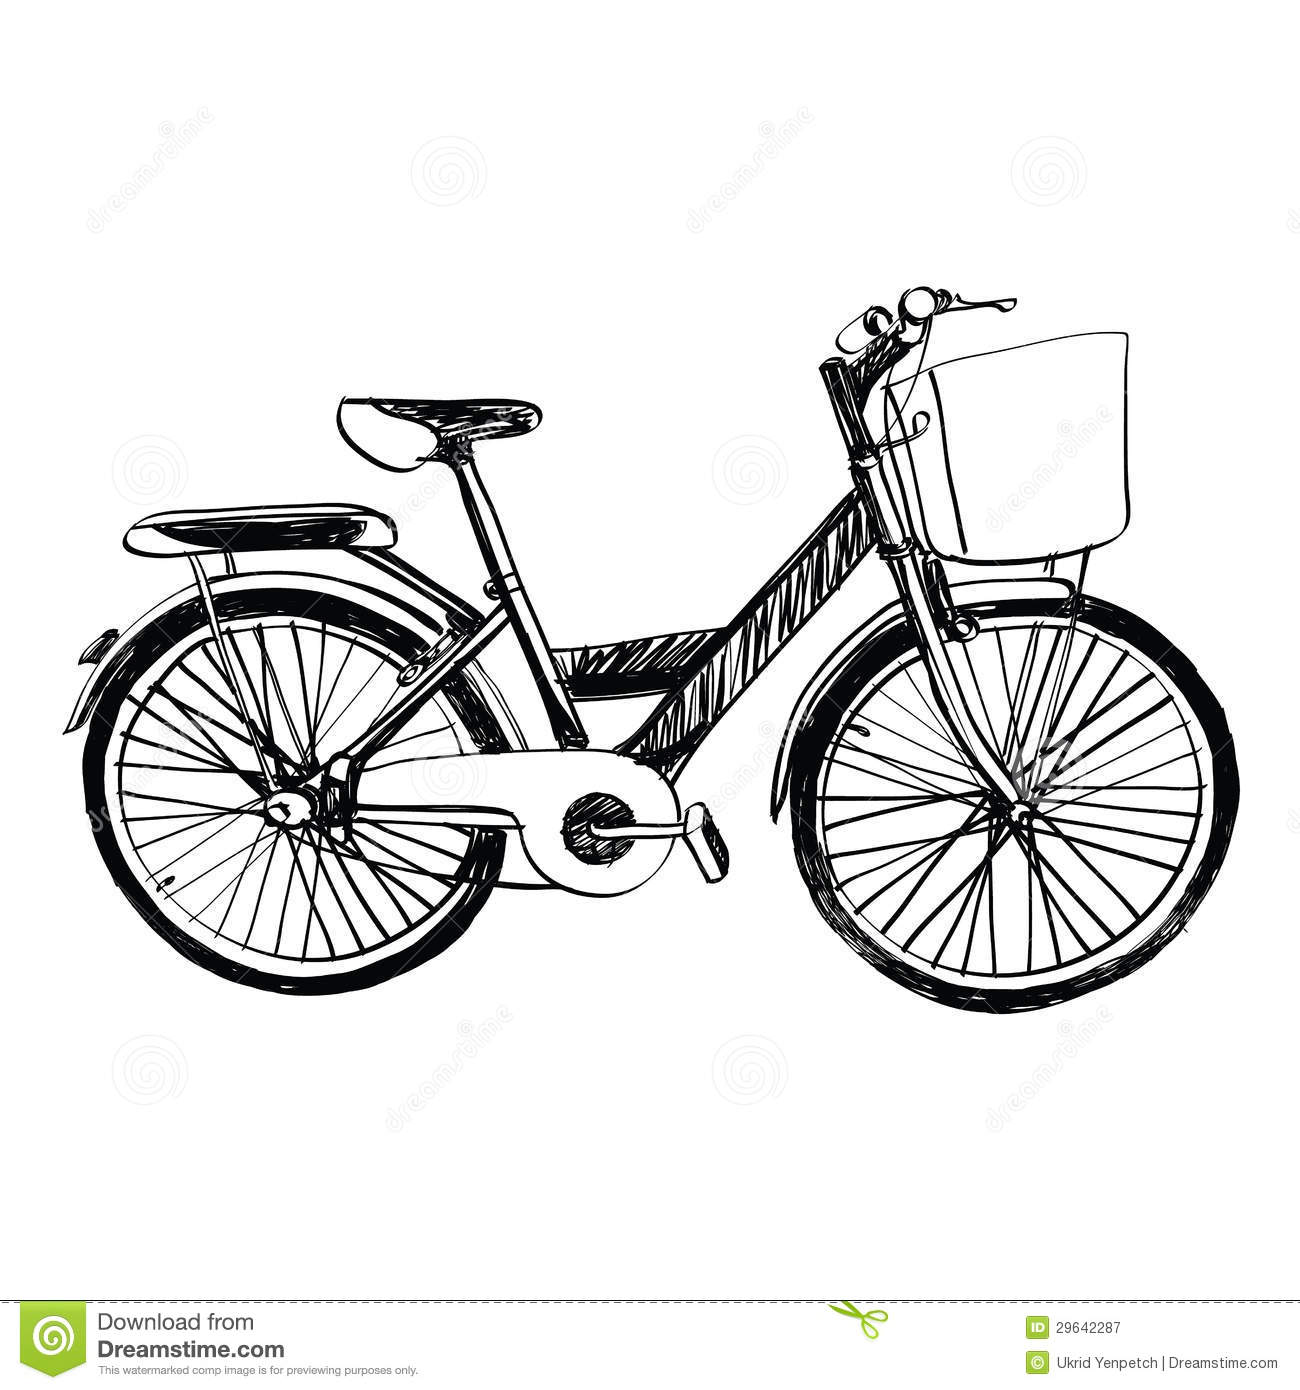 Simple bicycle illustration - photo#23